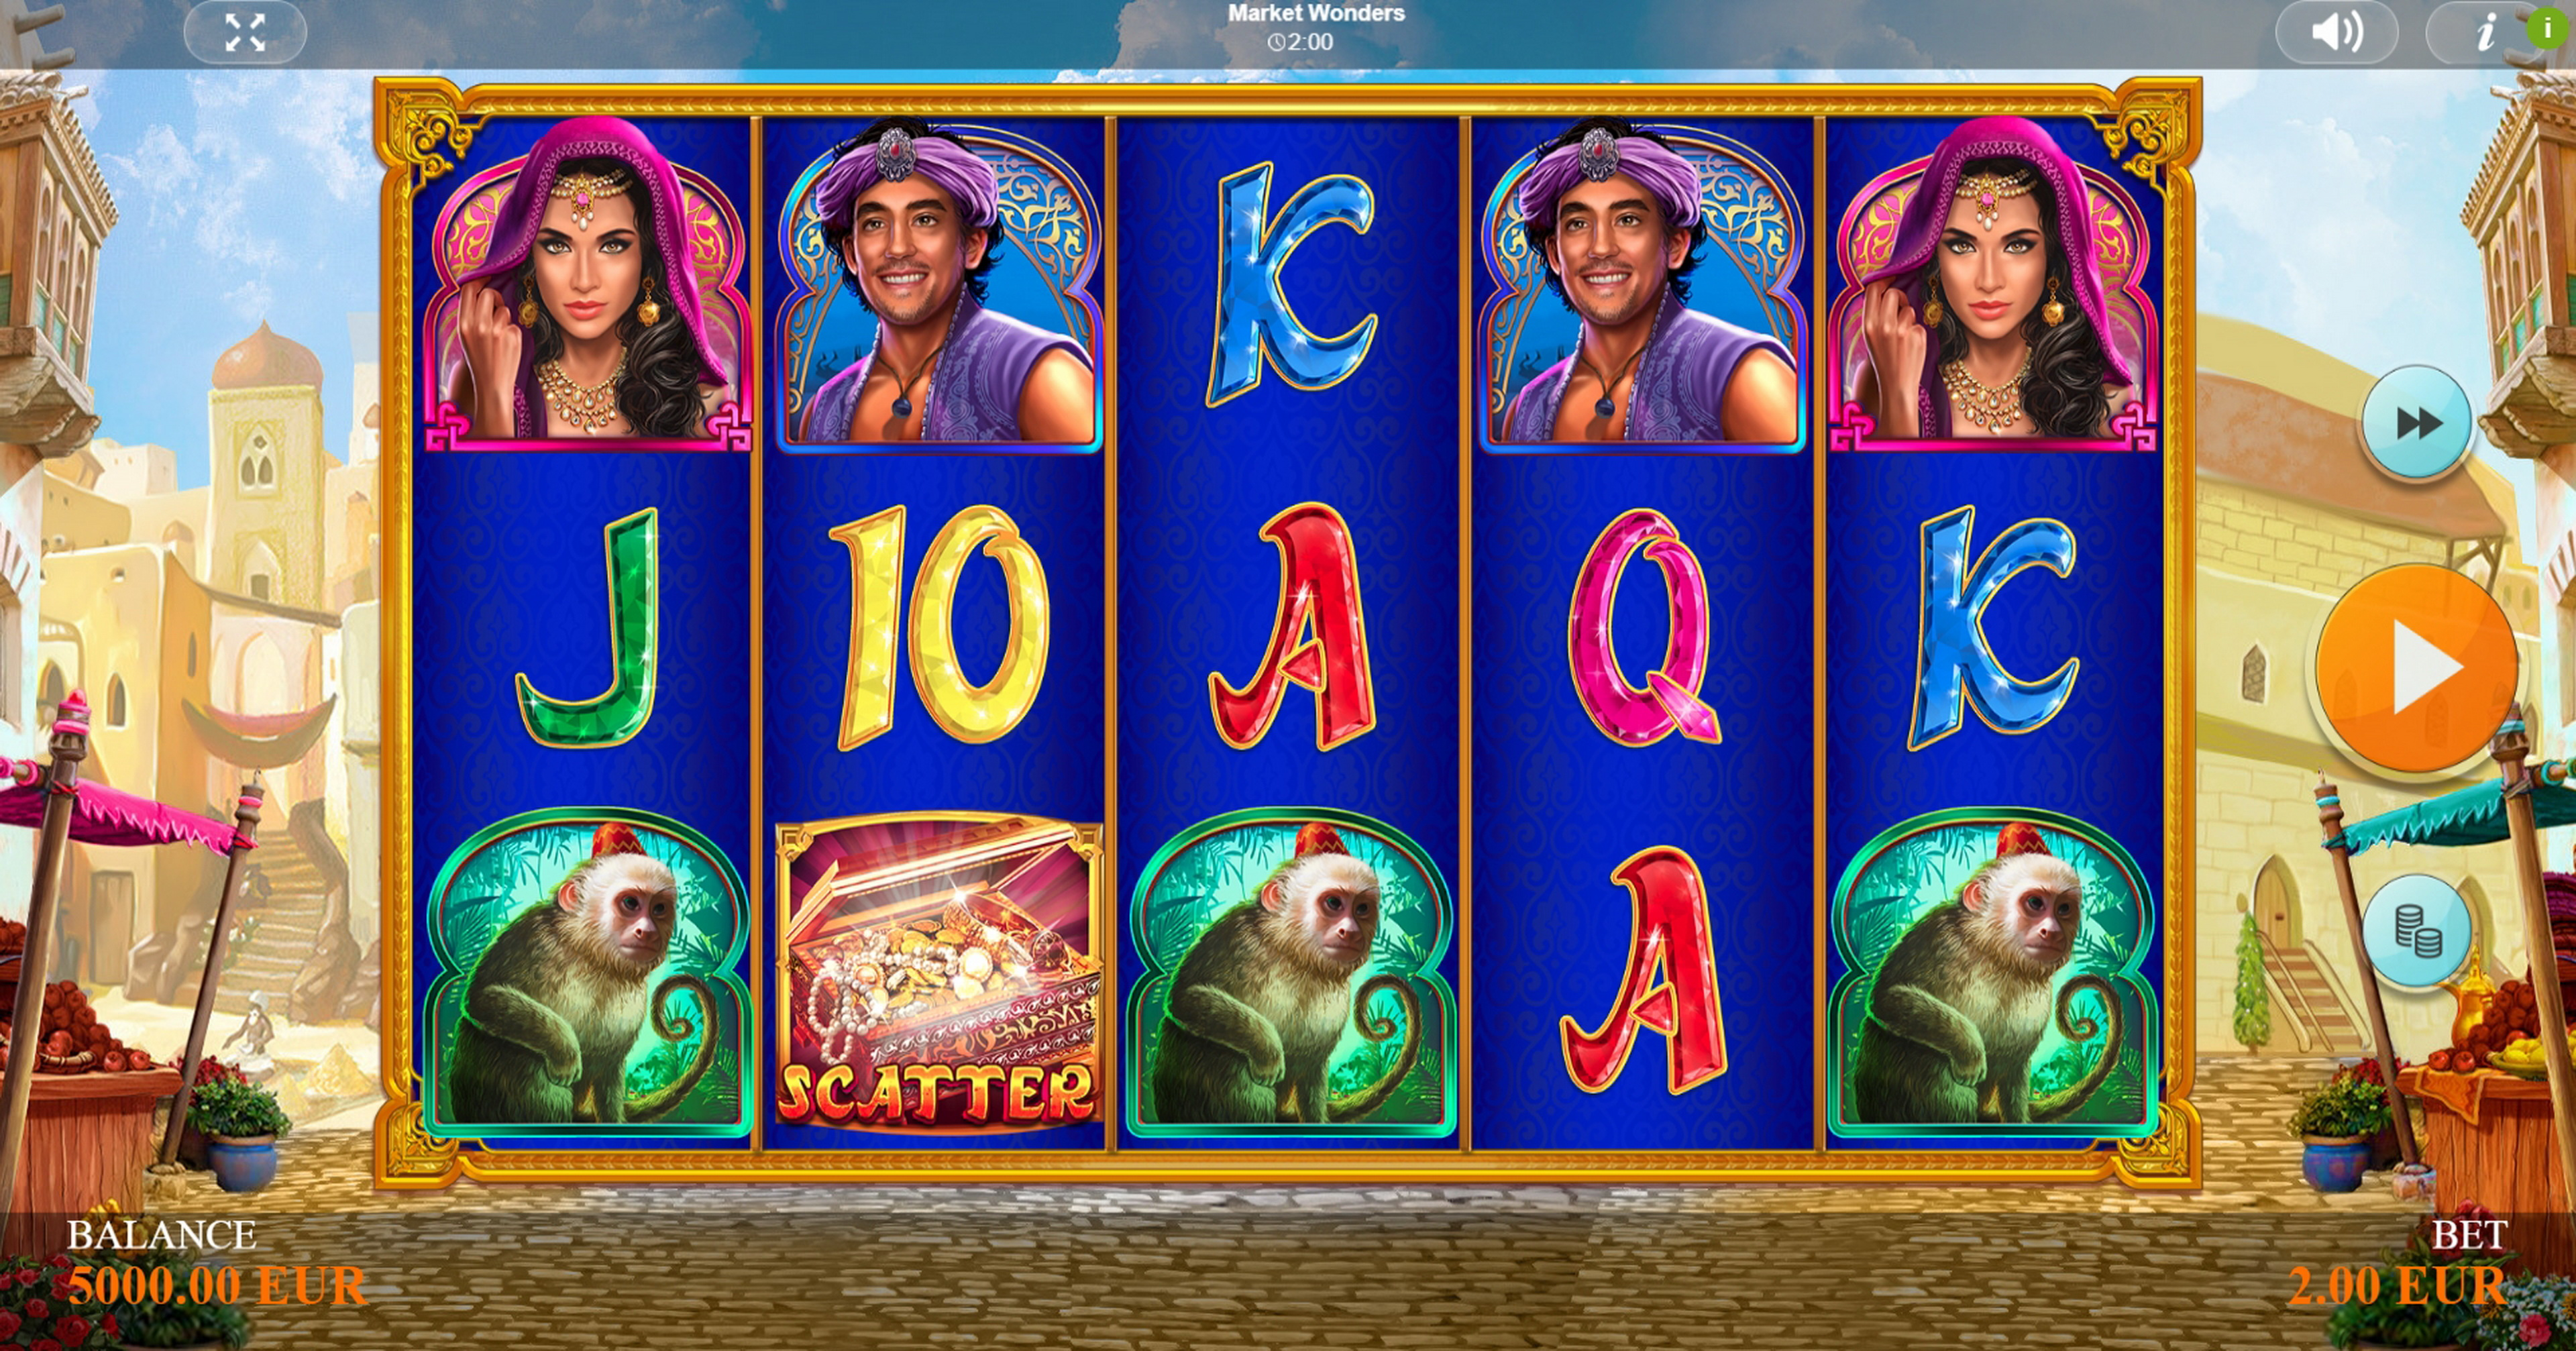 Reels in Market Wonders Slot Game by Betixon